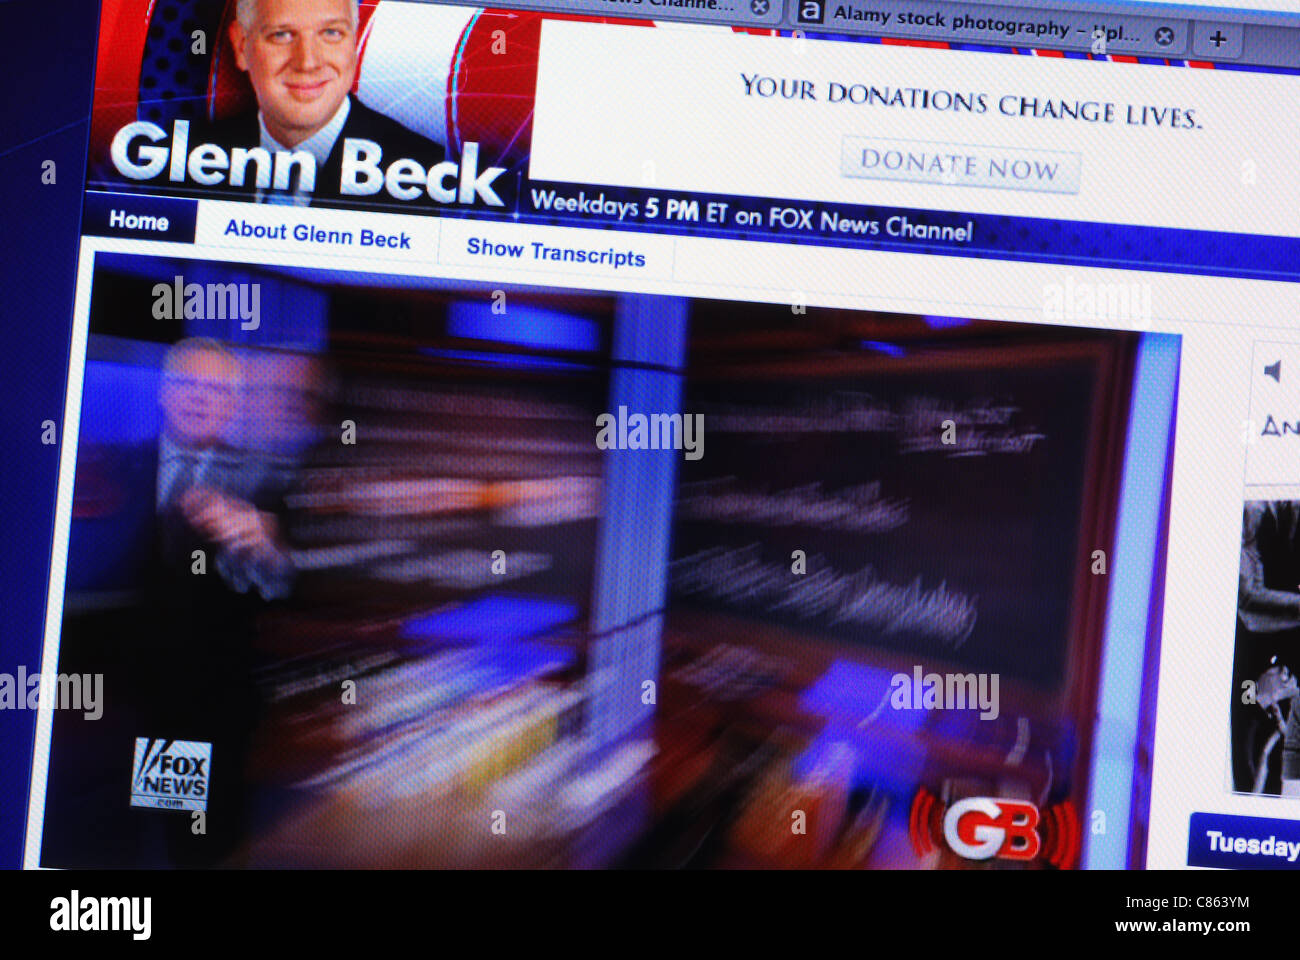 Live streaming video of Glenn Beck's Foxnews show on his website - Stock Image